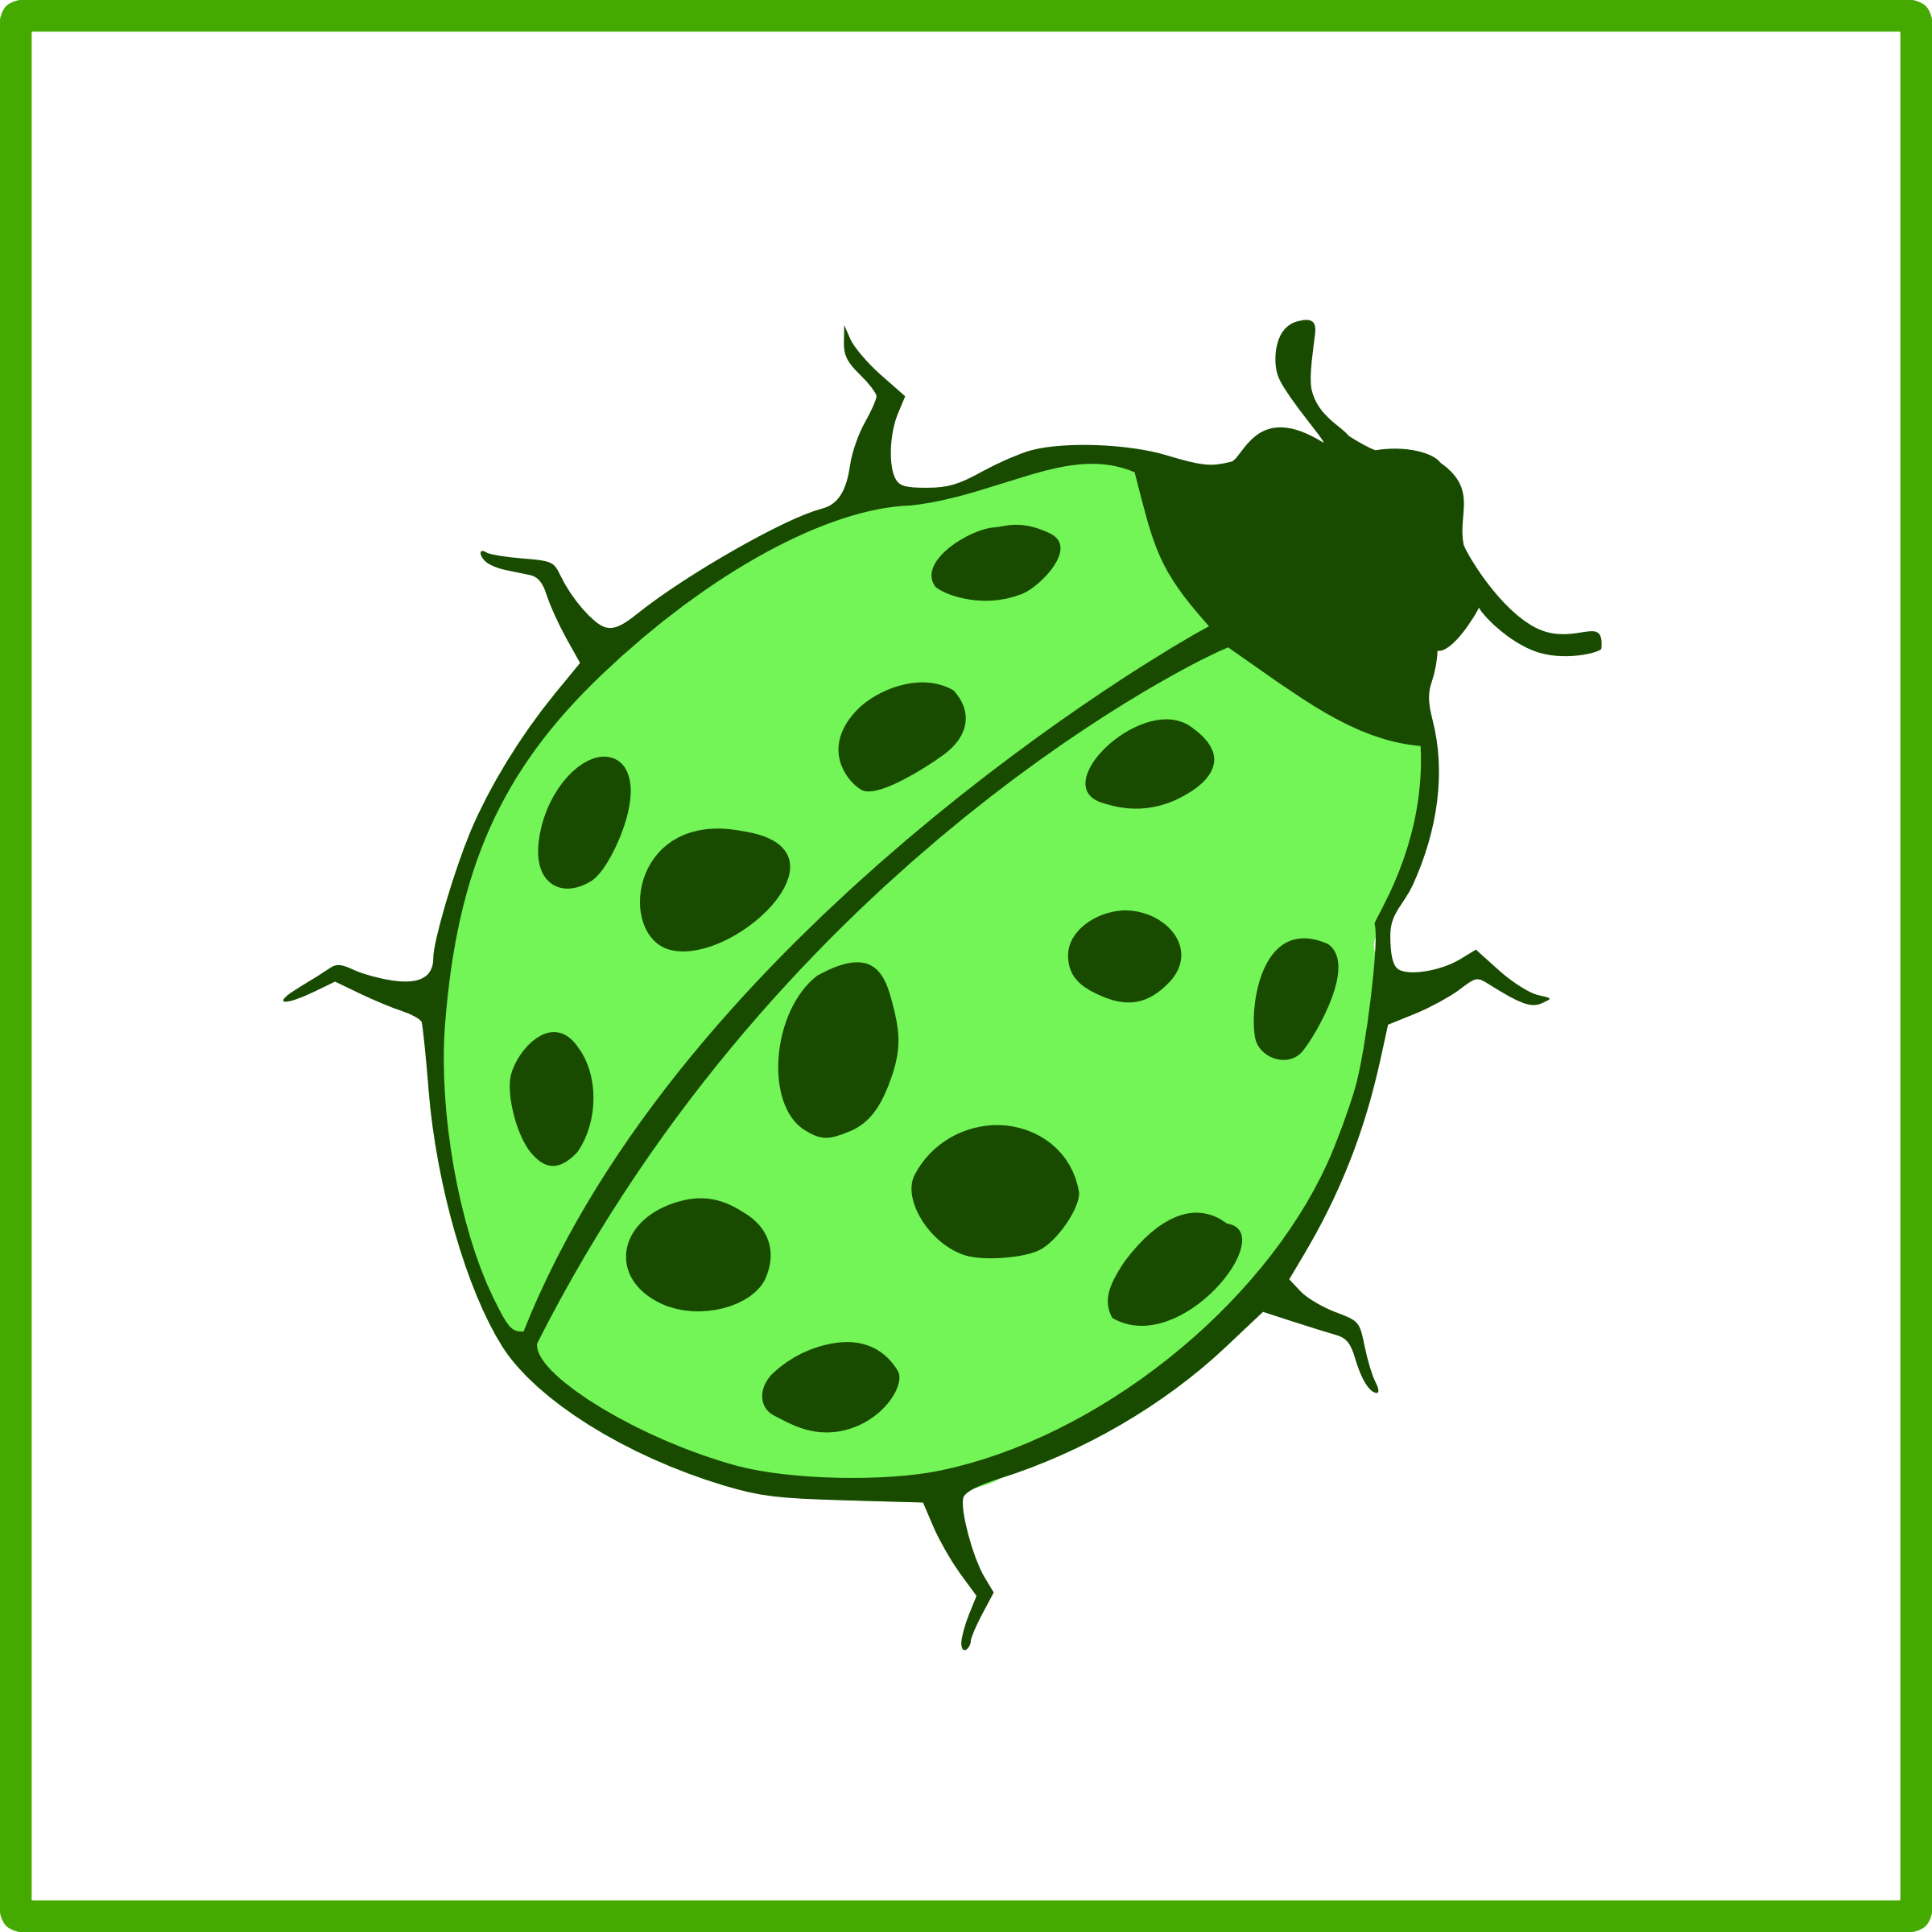 eco green beetle icon by dominiquechappard